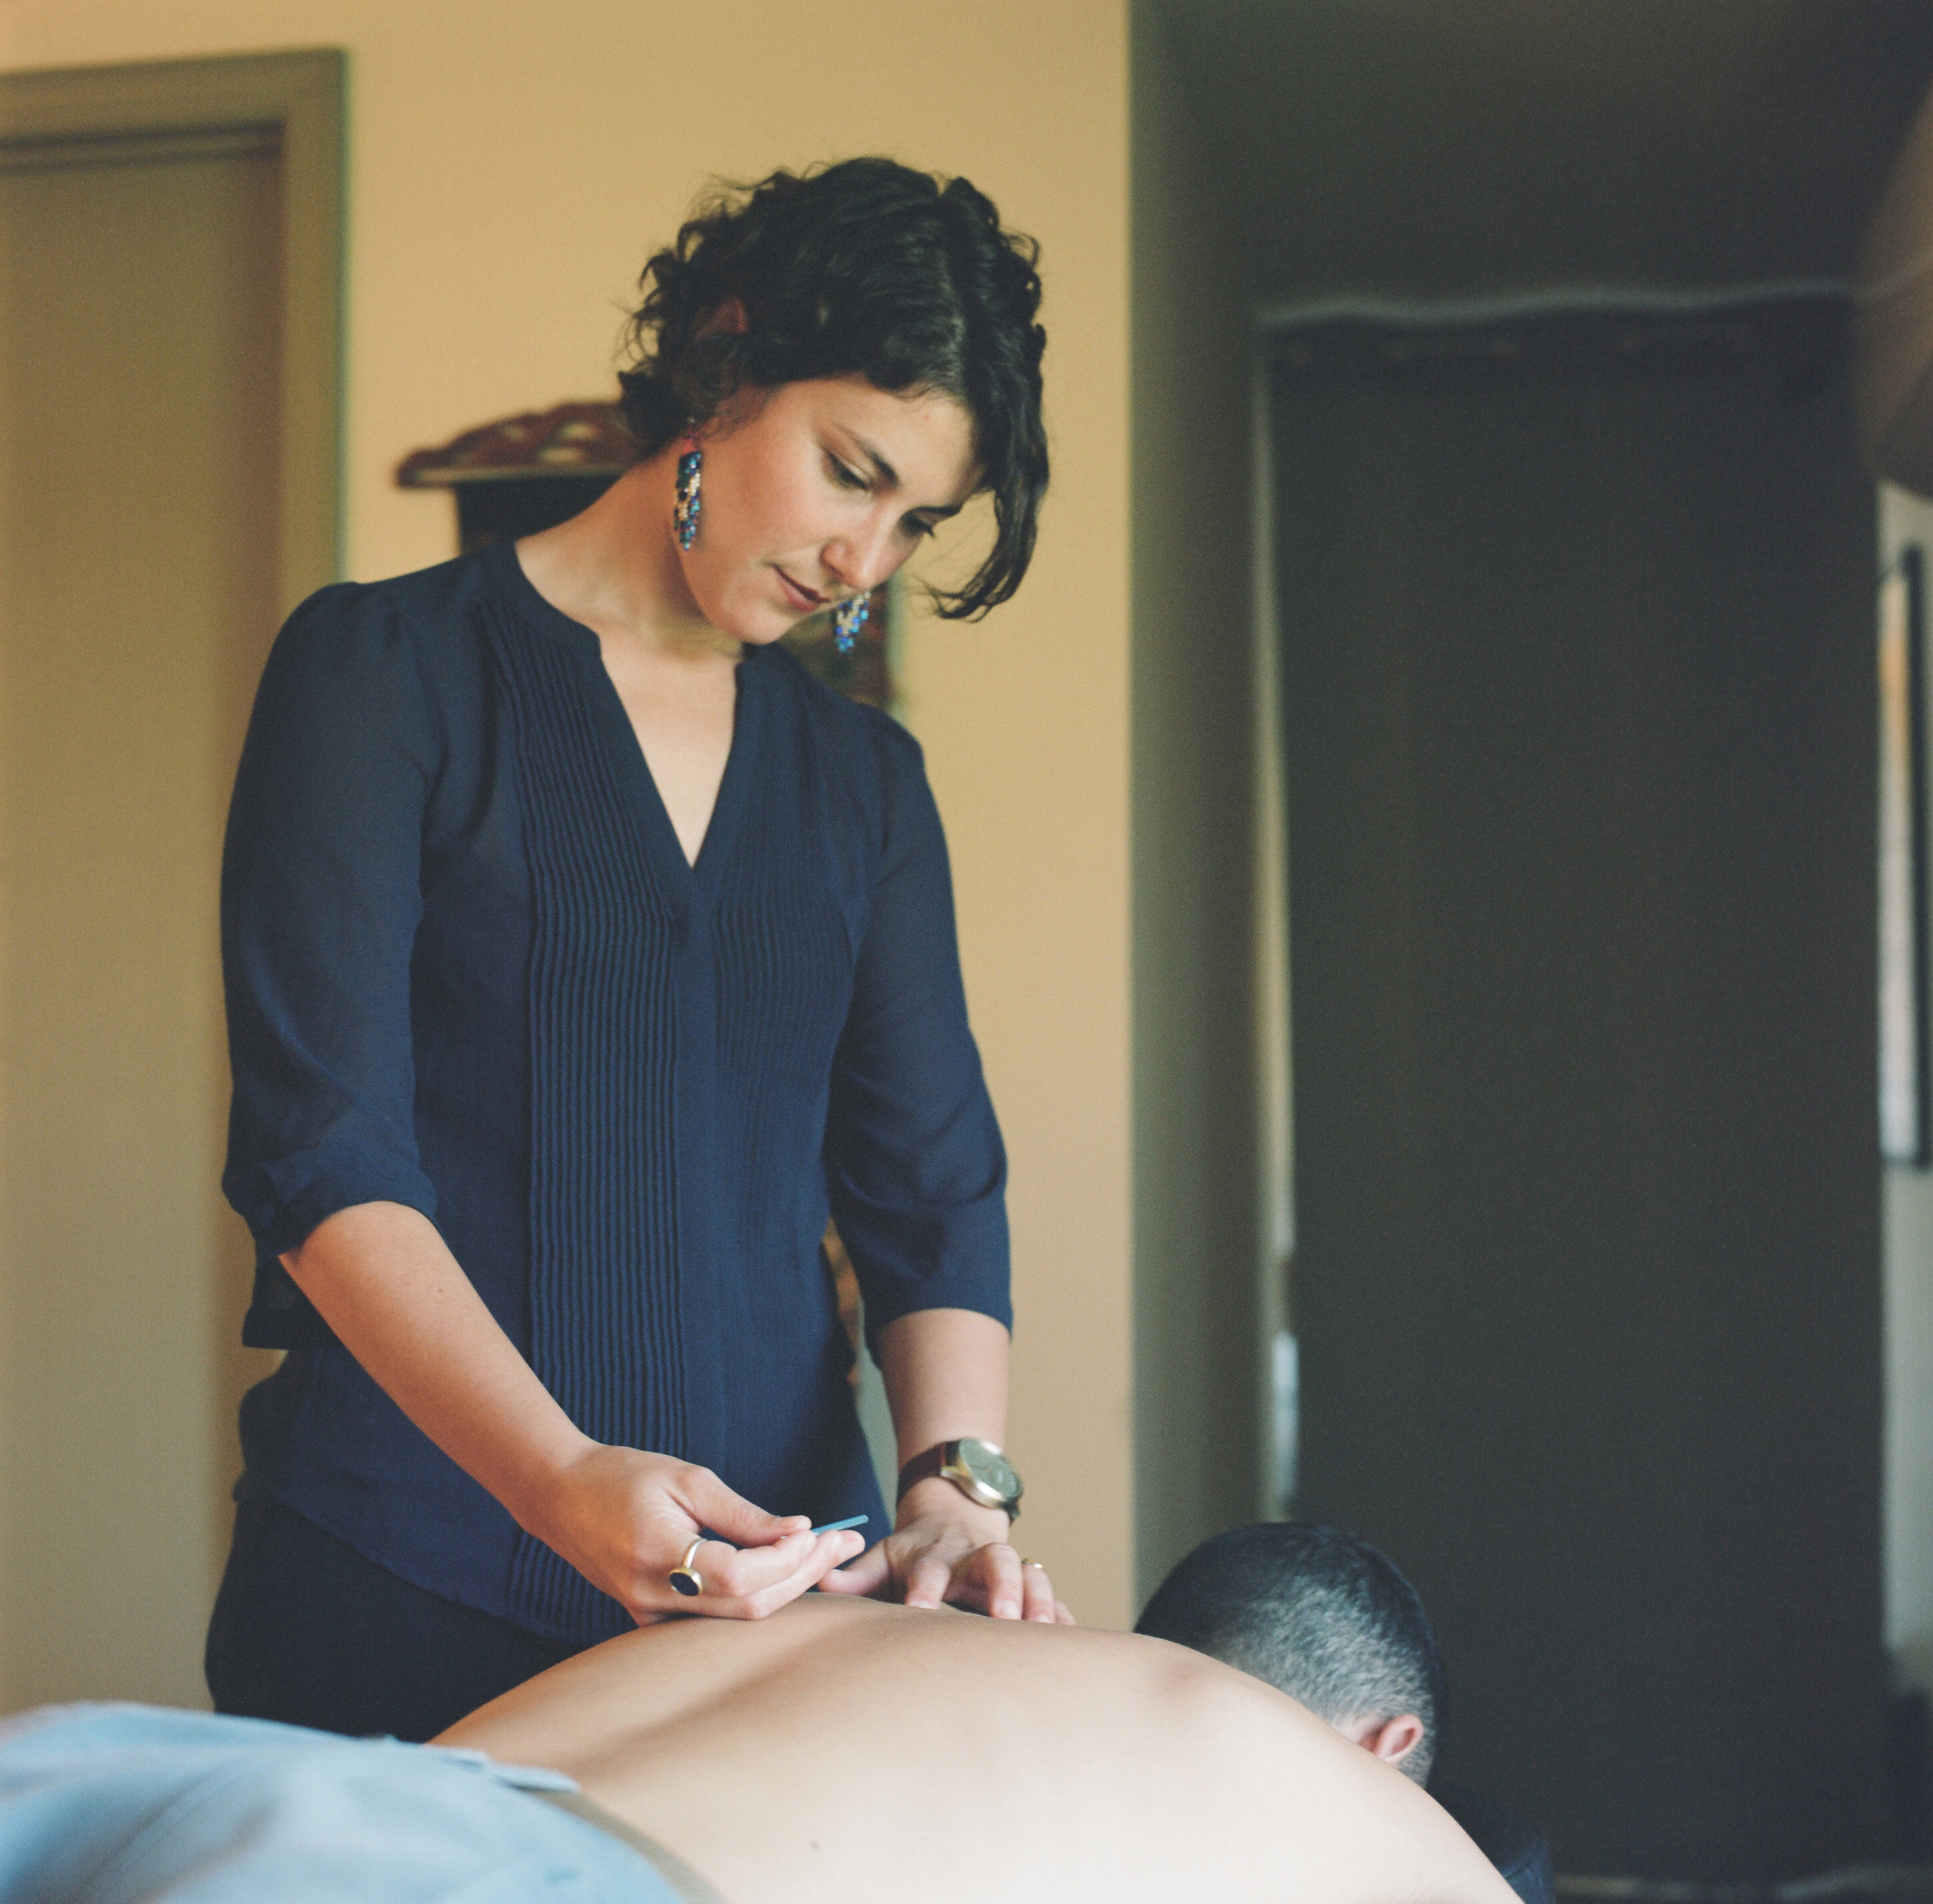 6-acupuncture_chinese_medicine_fertility_sports_medicine_breech_cupping_labor_induction_pain_injury_hudson_valley_NY